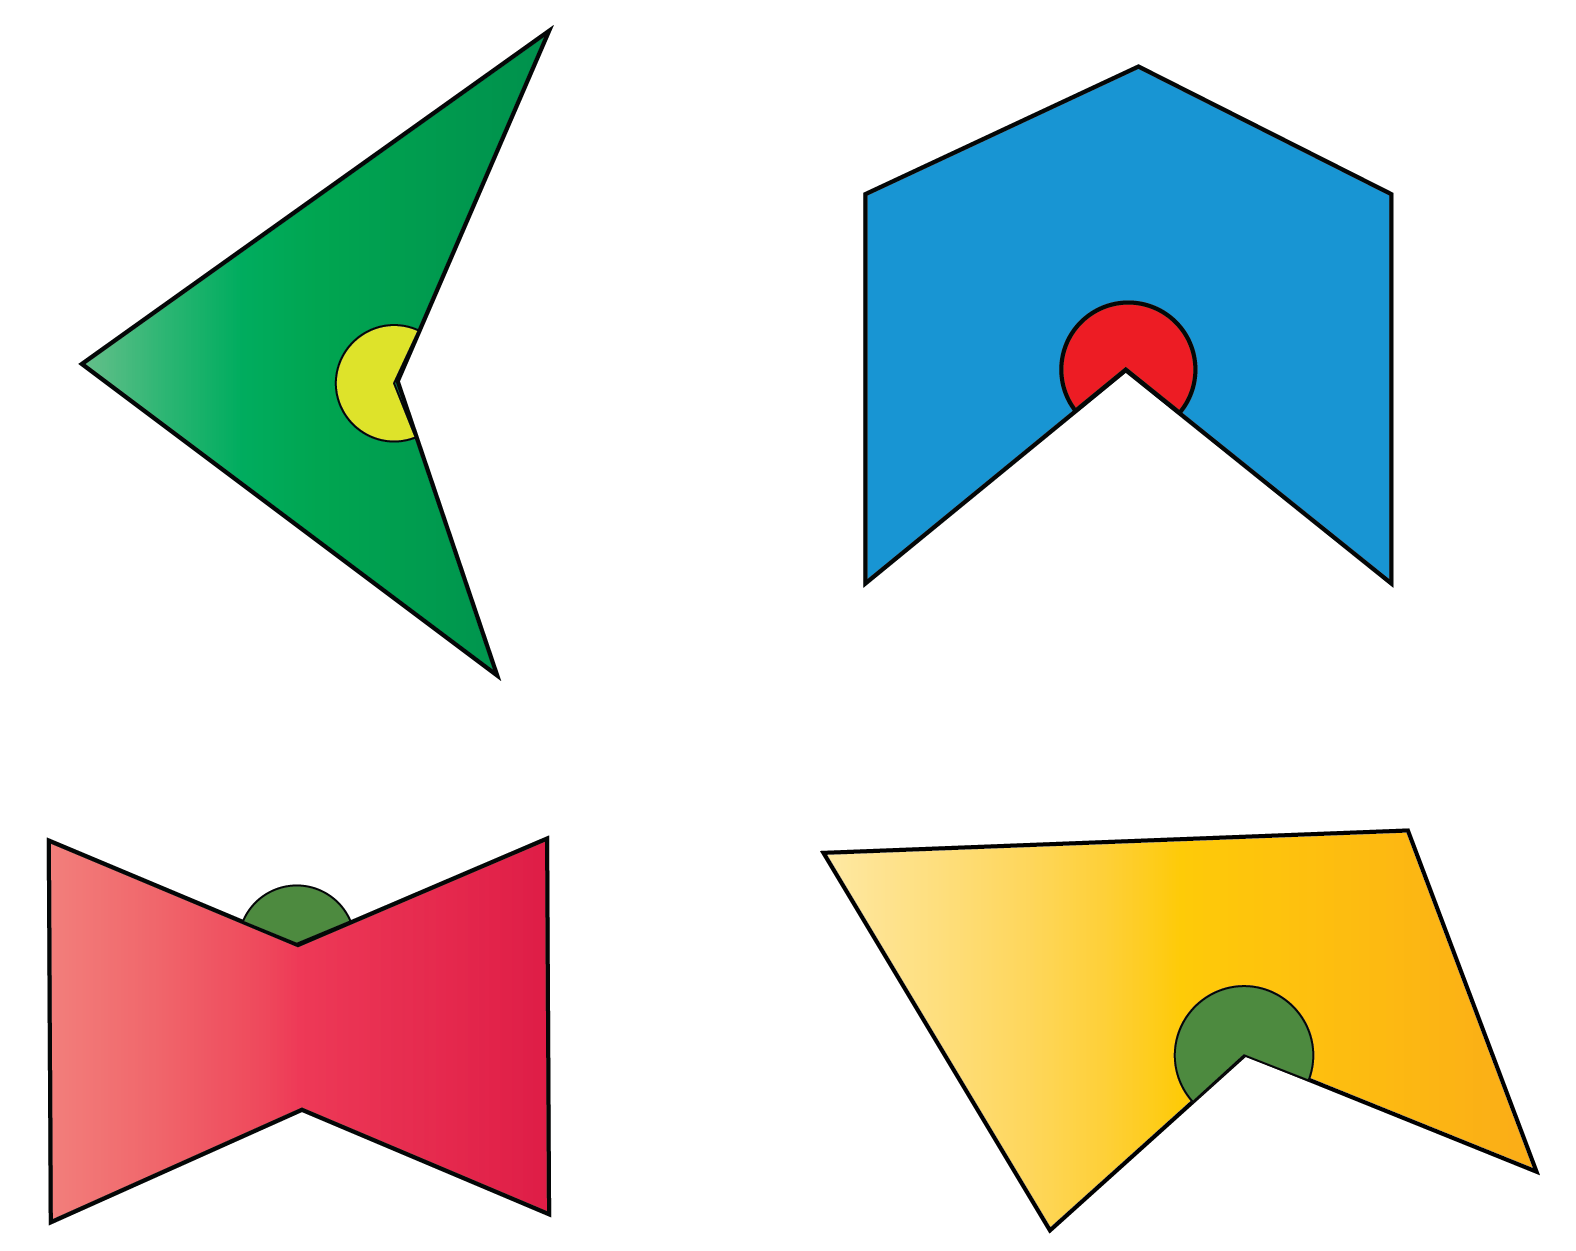 Examples of concave polygons